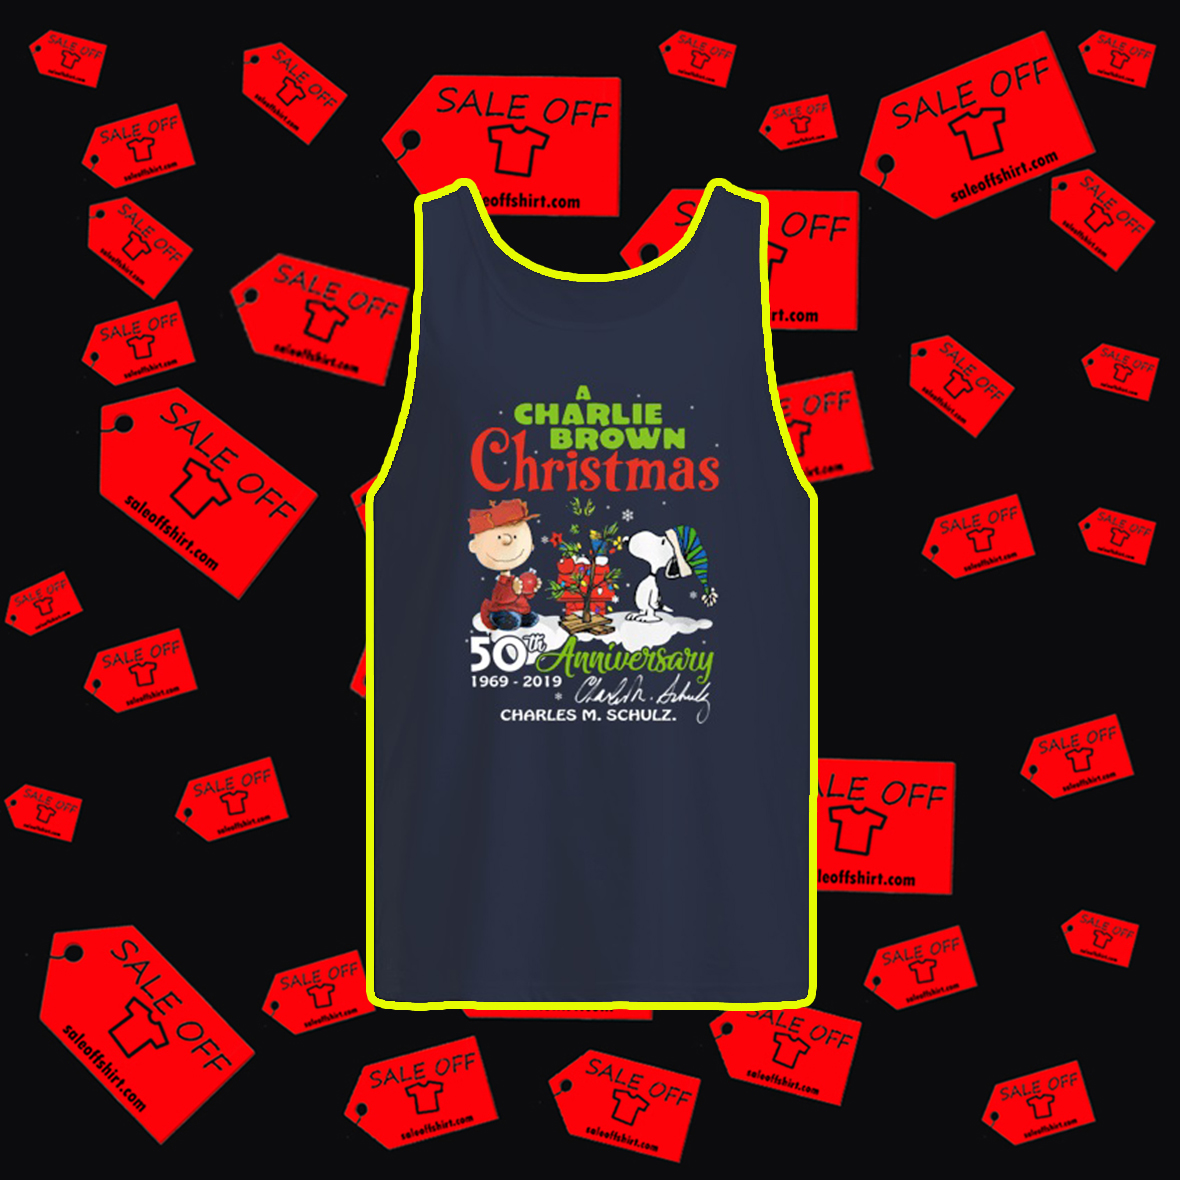 A Charlie Brown Christmas 50th Anniversary 1969 2019 Charles M. Schulz Signature tank top